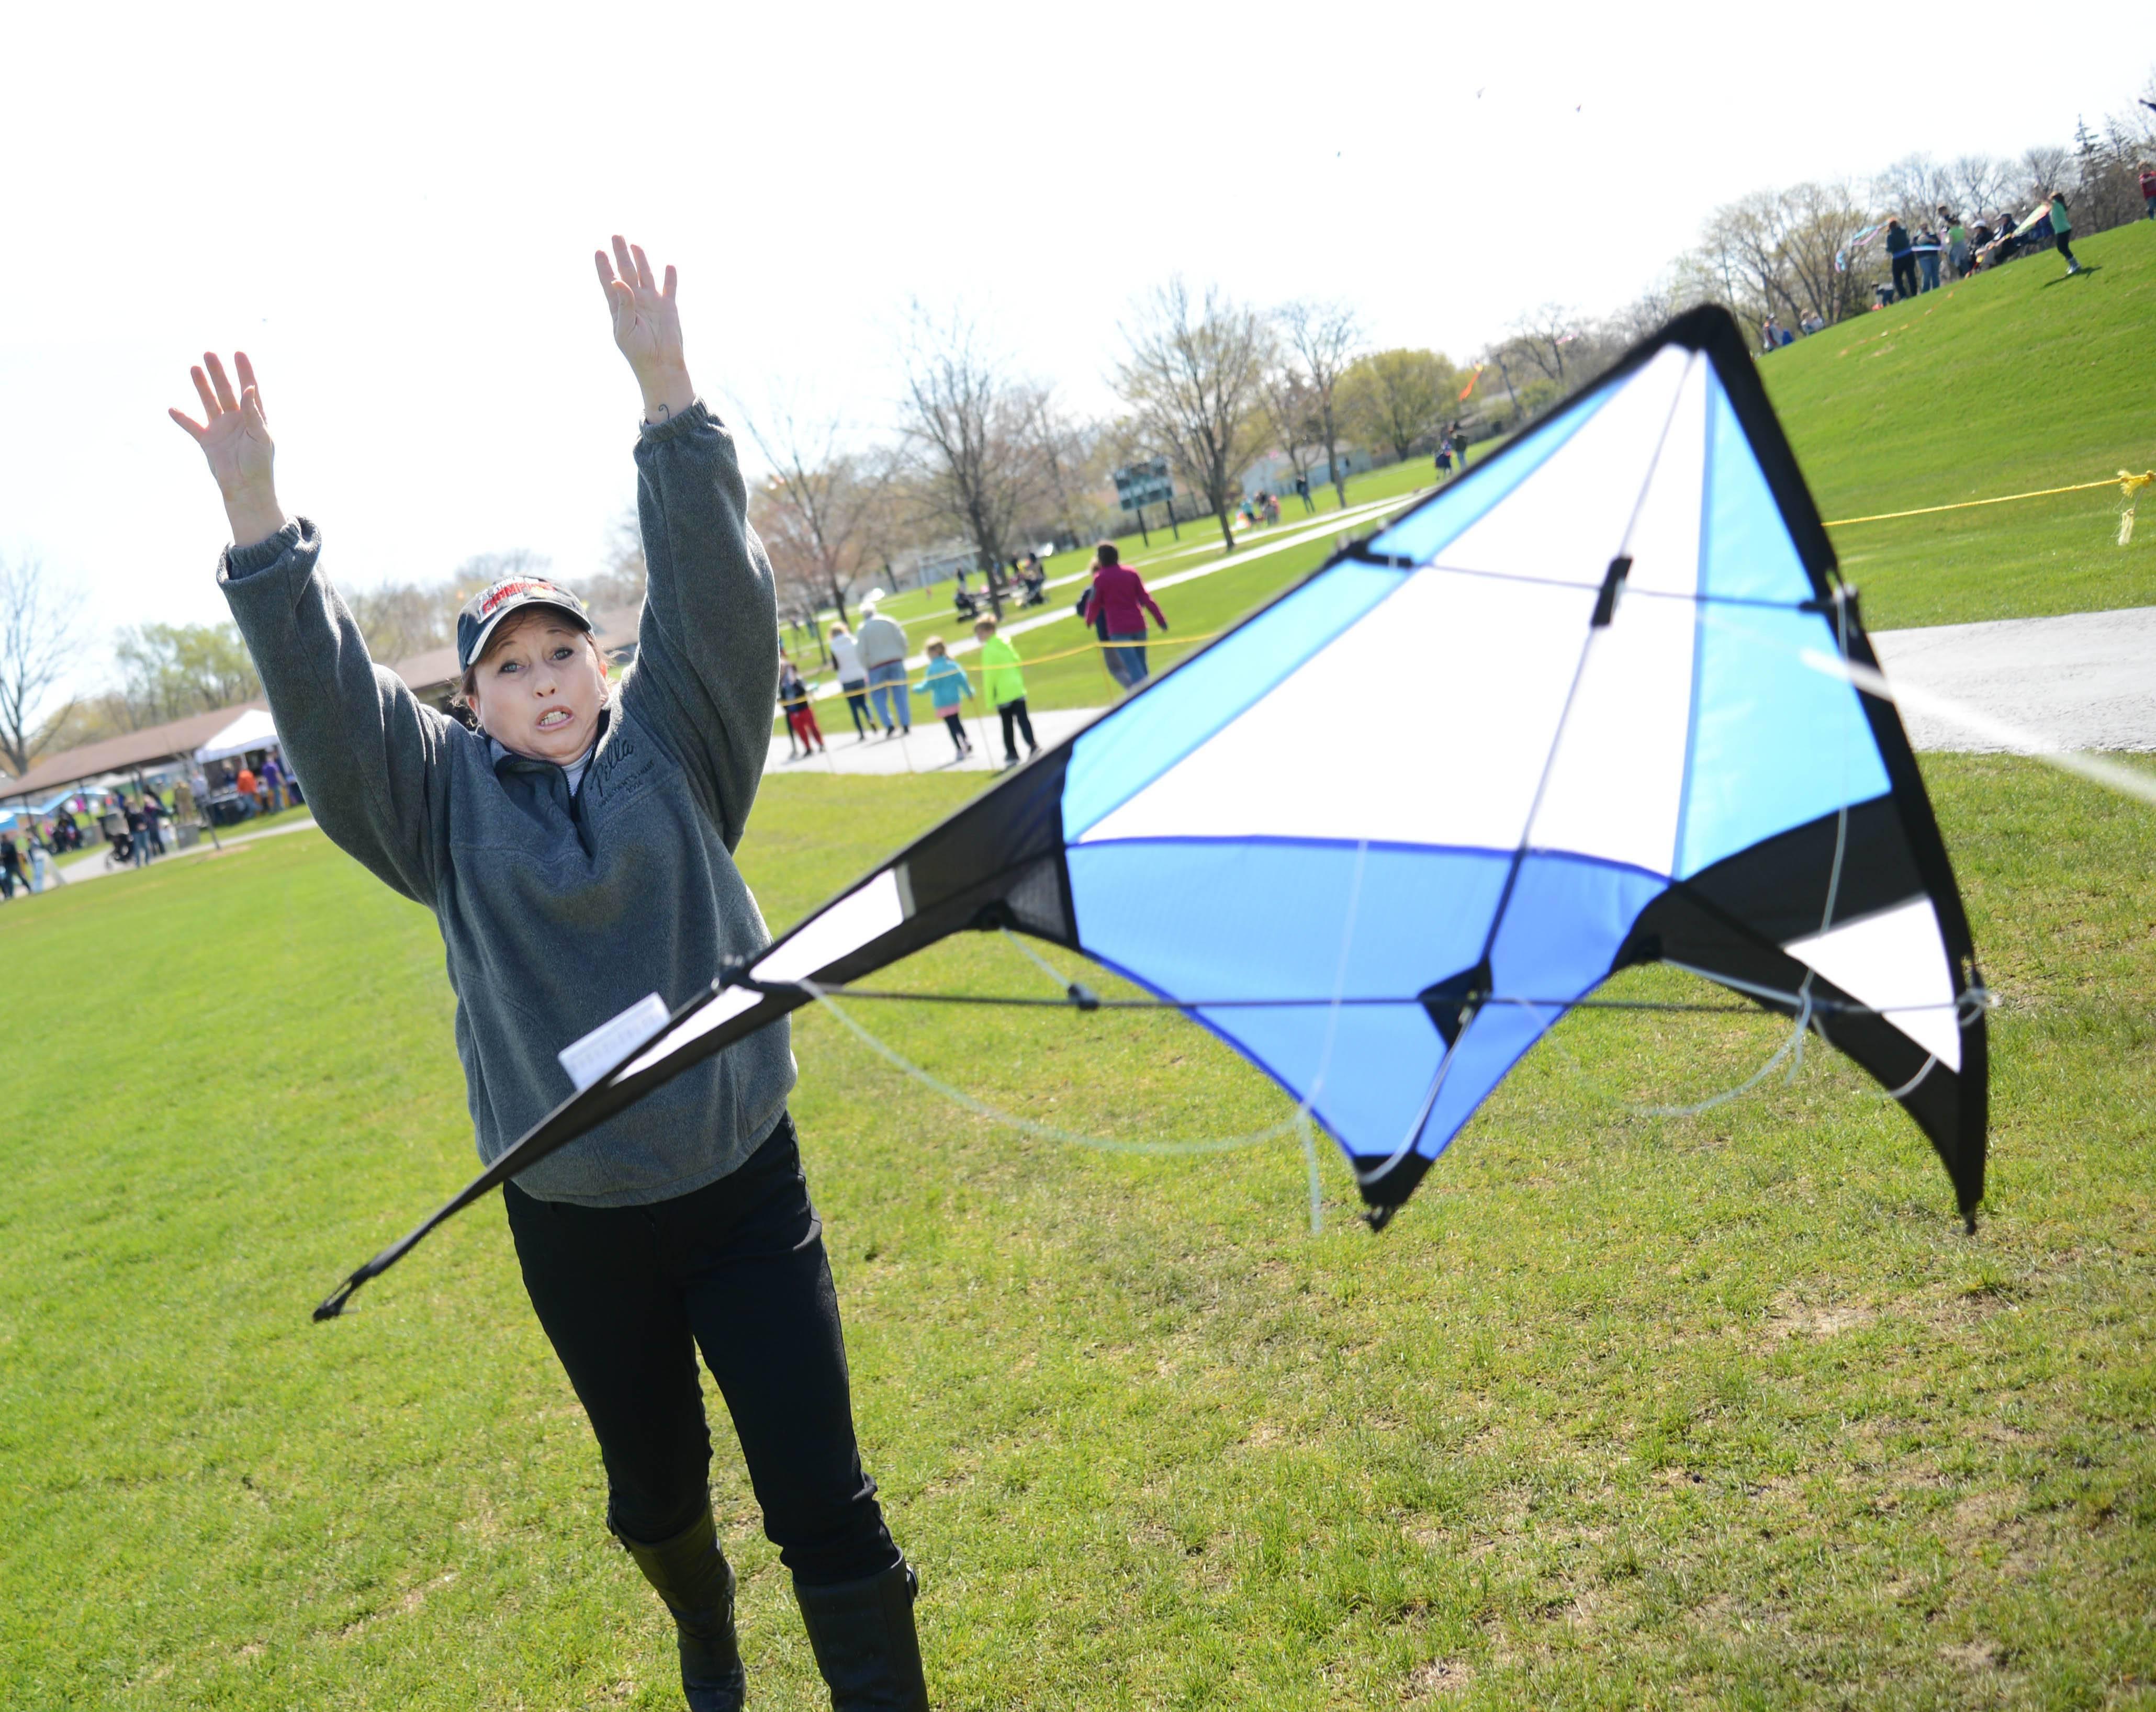 Christine Mirabella, of Aurora, releases a kite during the kite flying event at Graf Park in Wheaton on Saturday. More than 200 people took part. Prizes were given for the most unique kites.